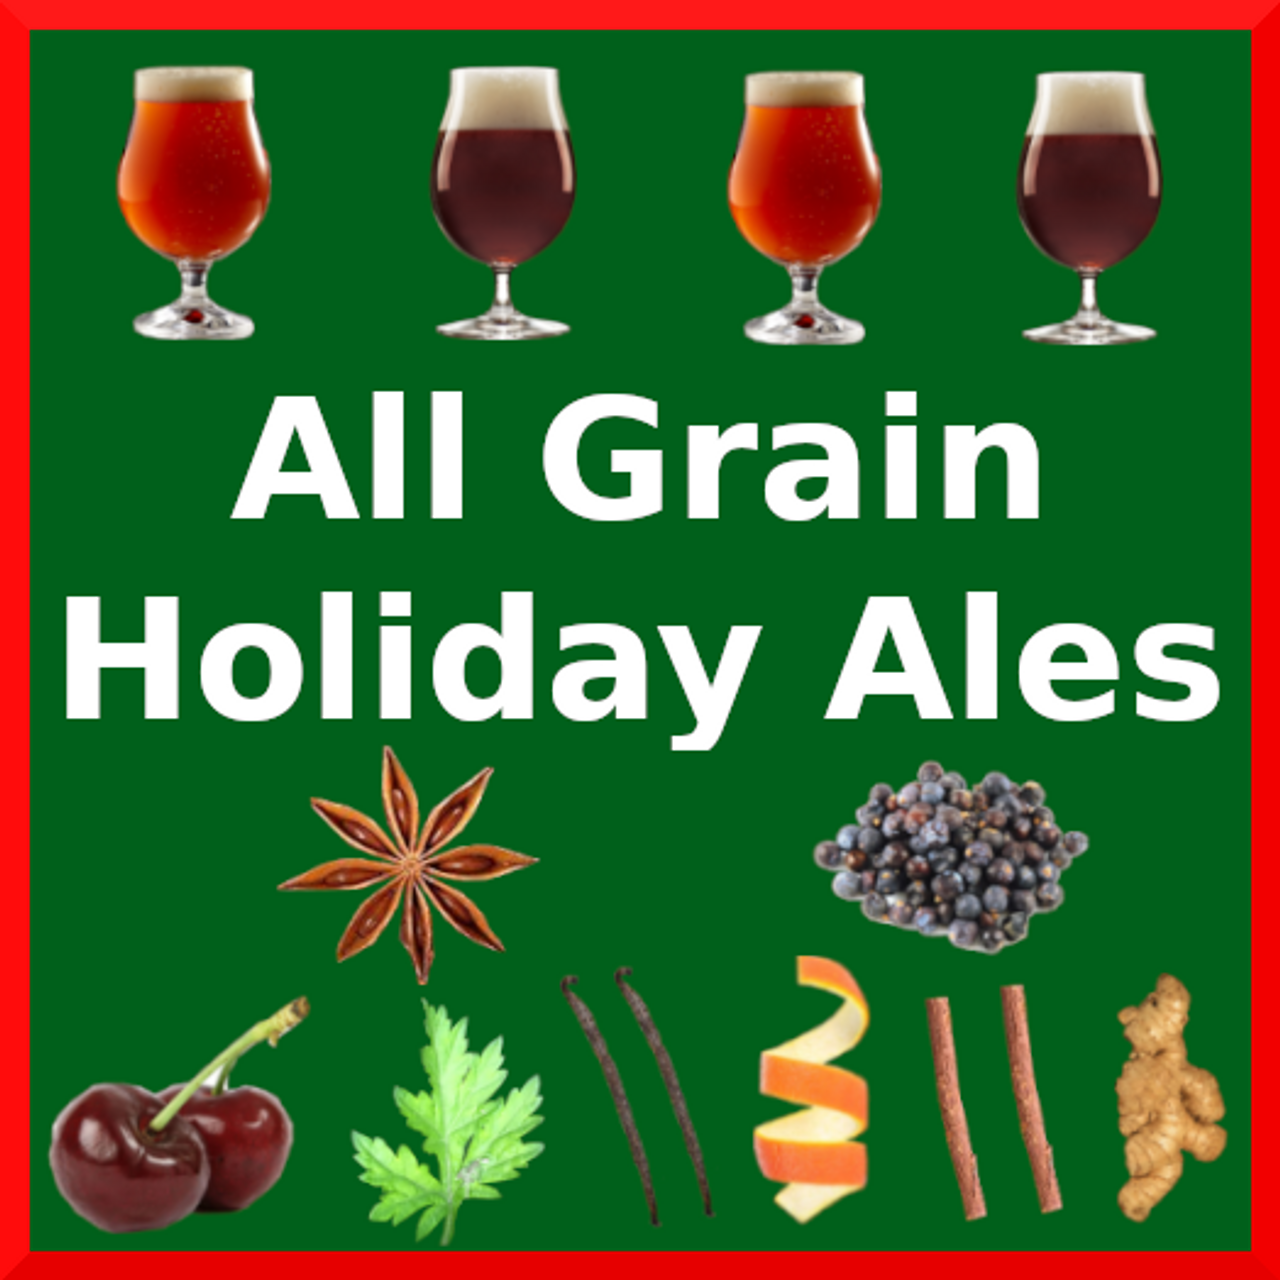 All Grain Holiday Ales